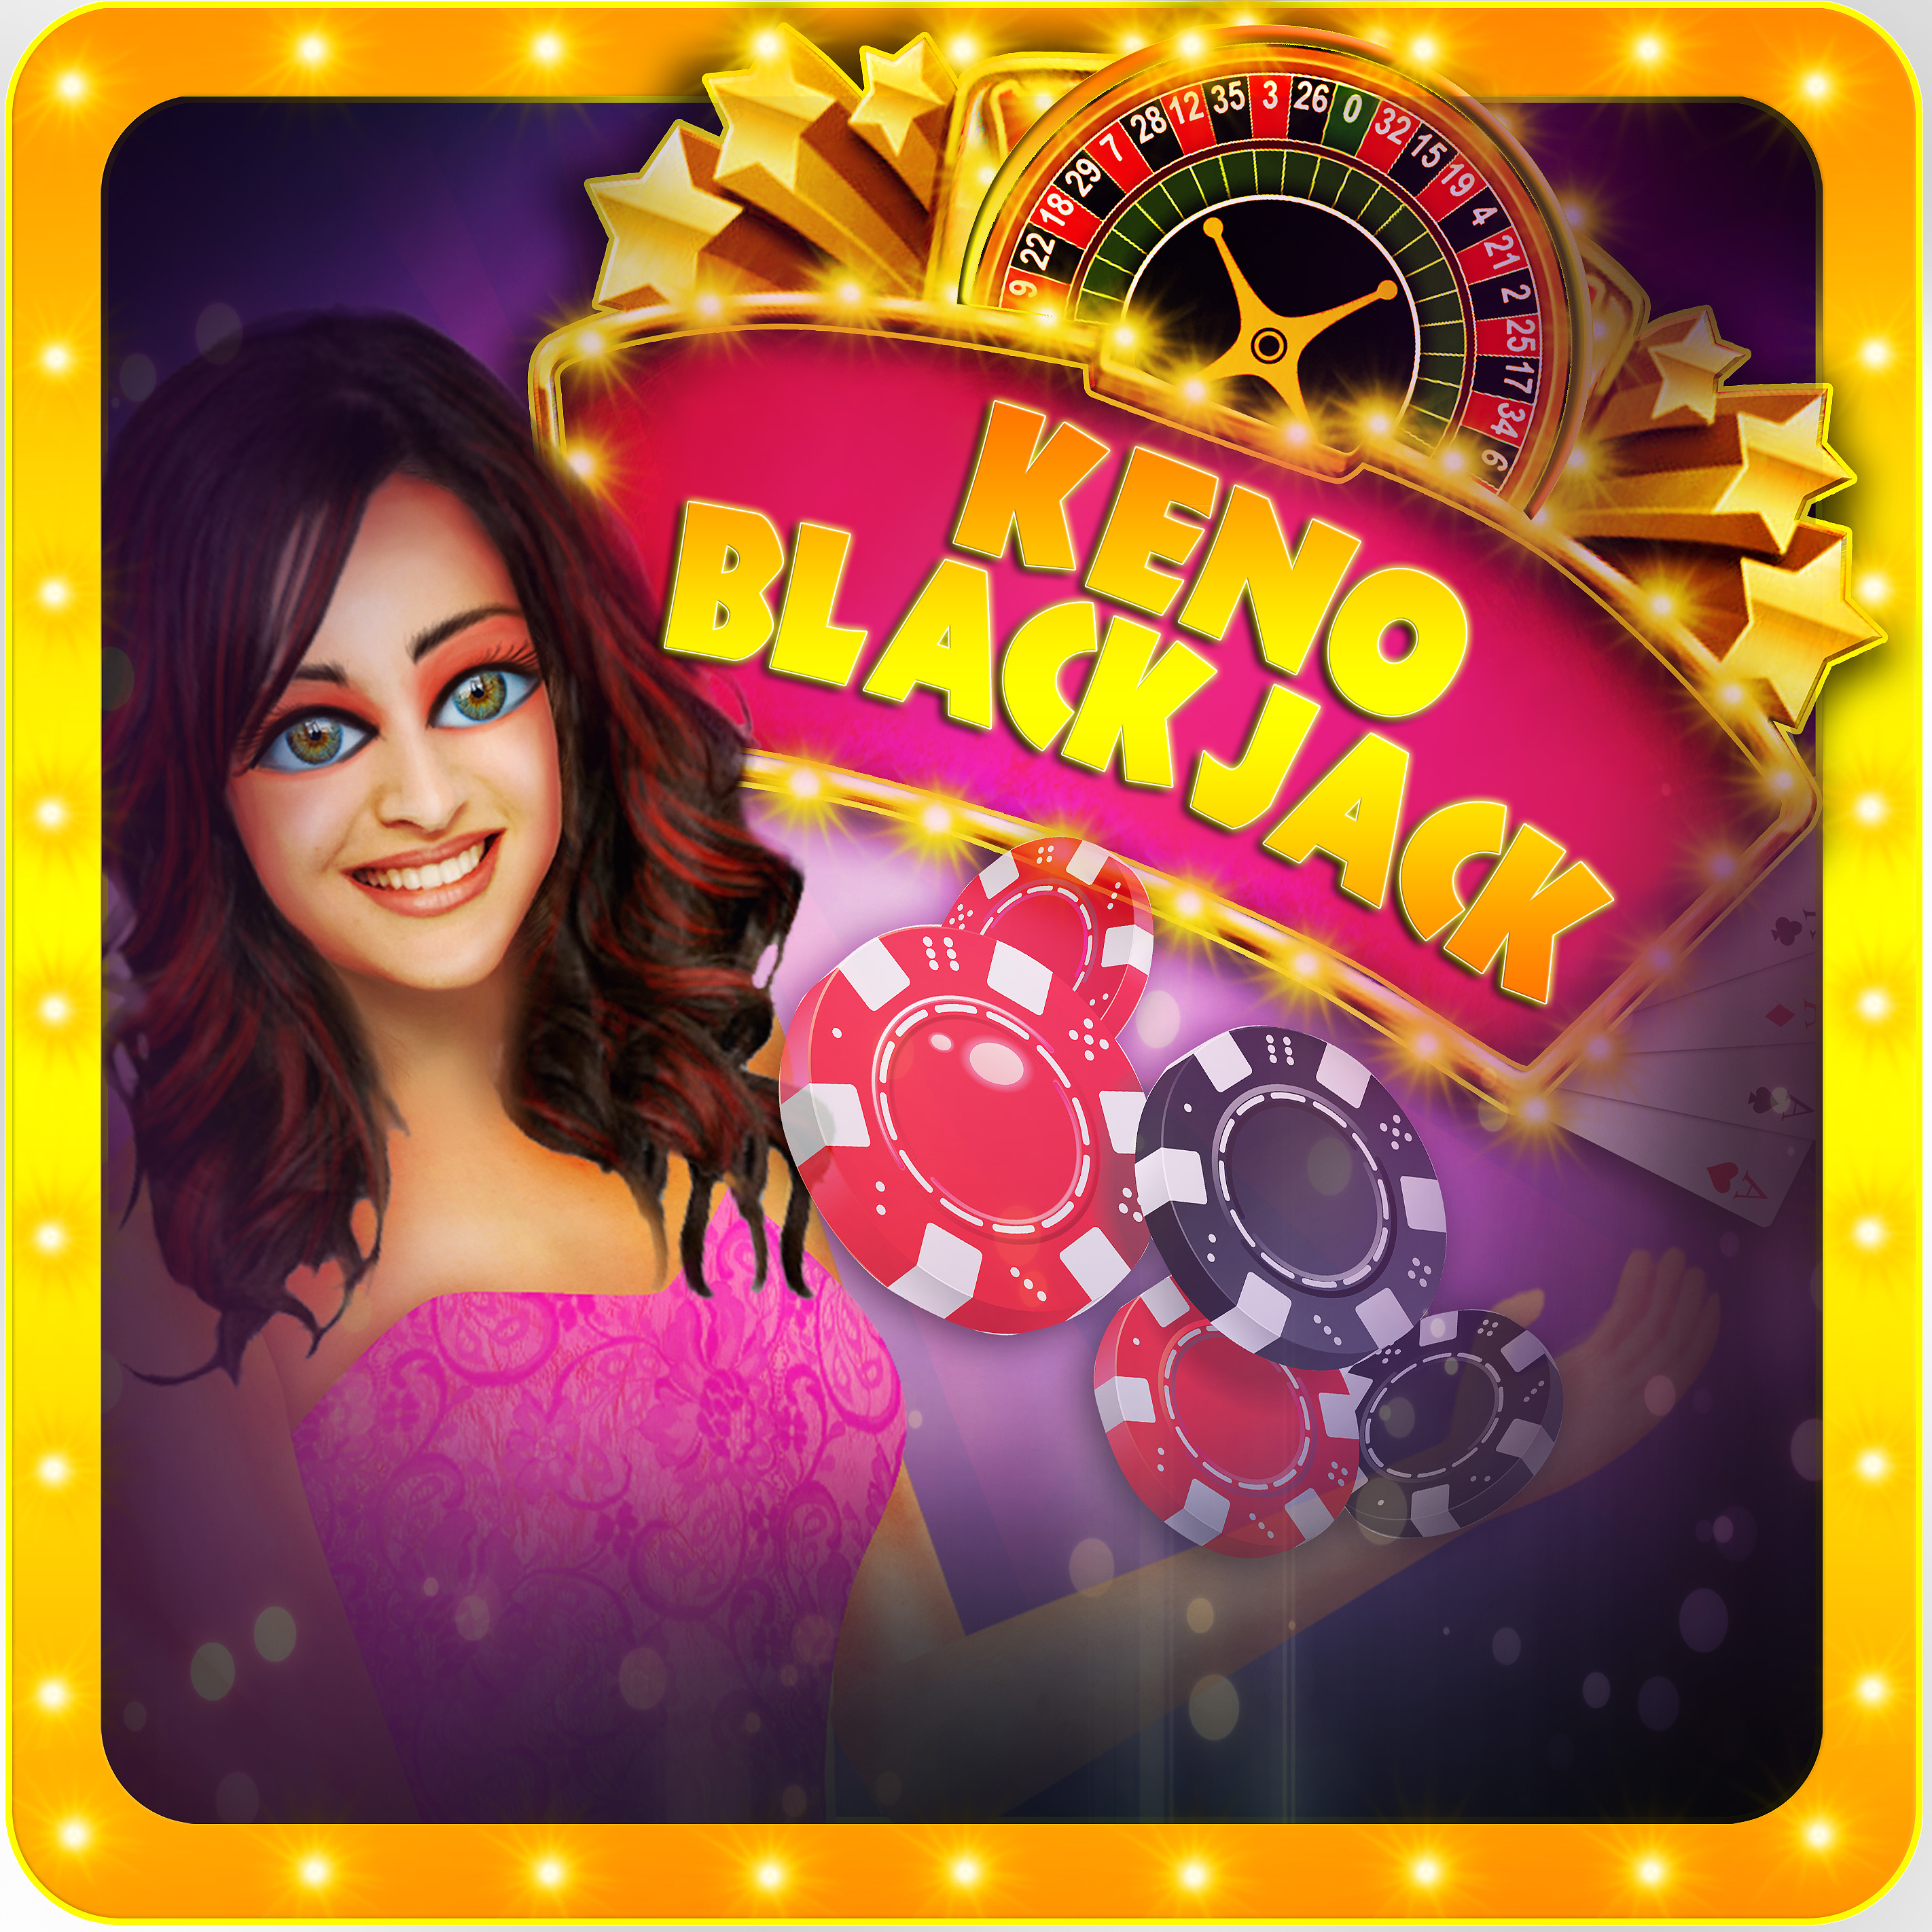 Keno Blackjack Slot Casino